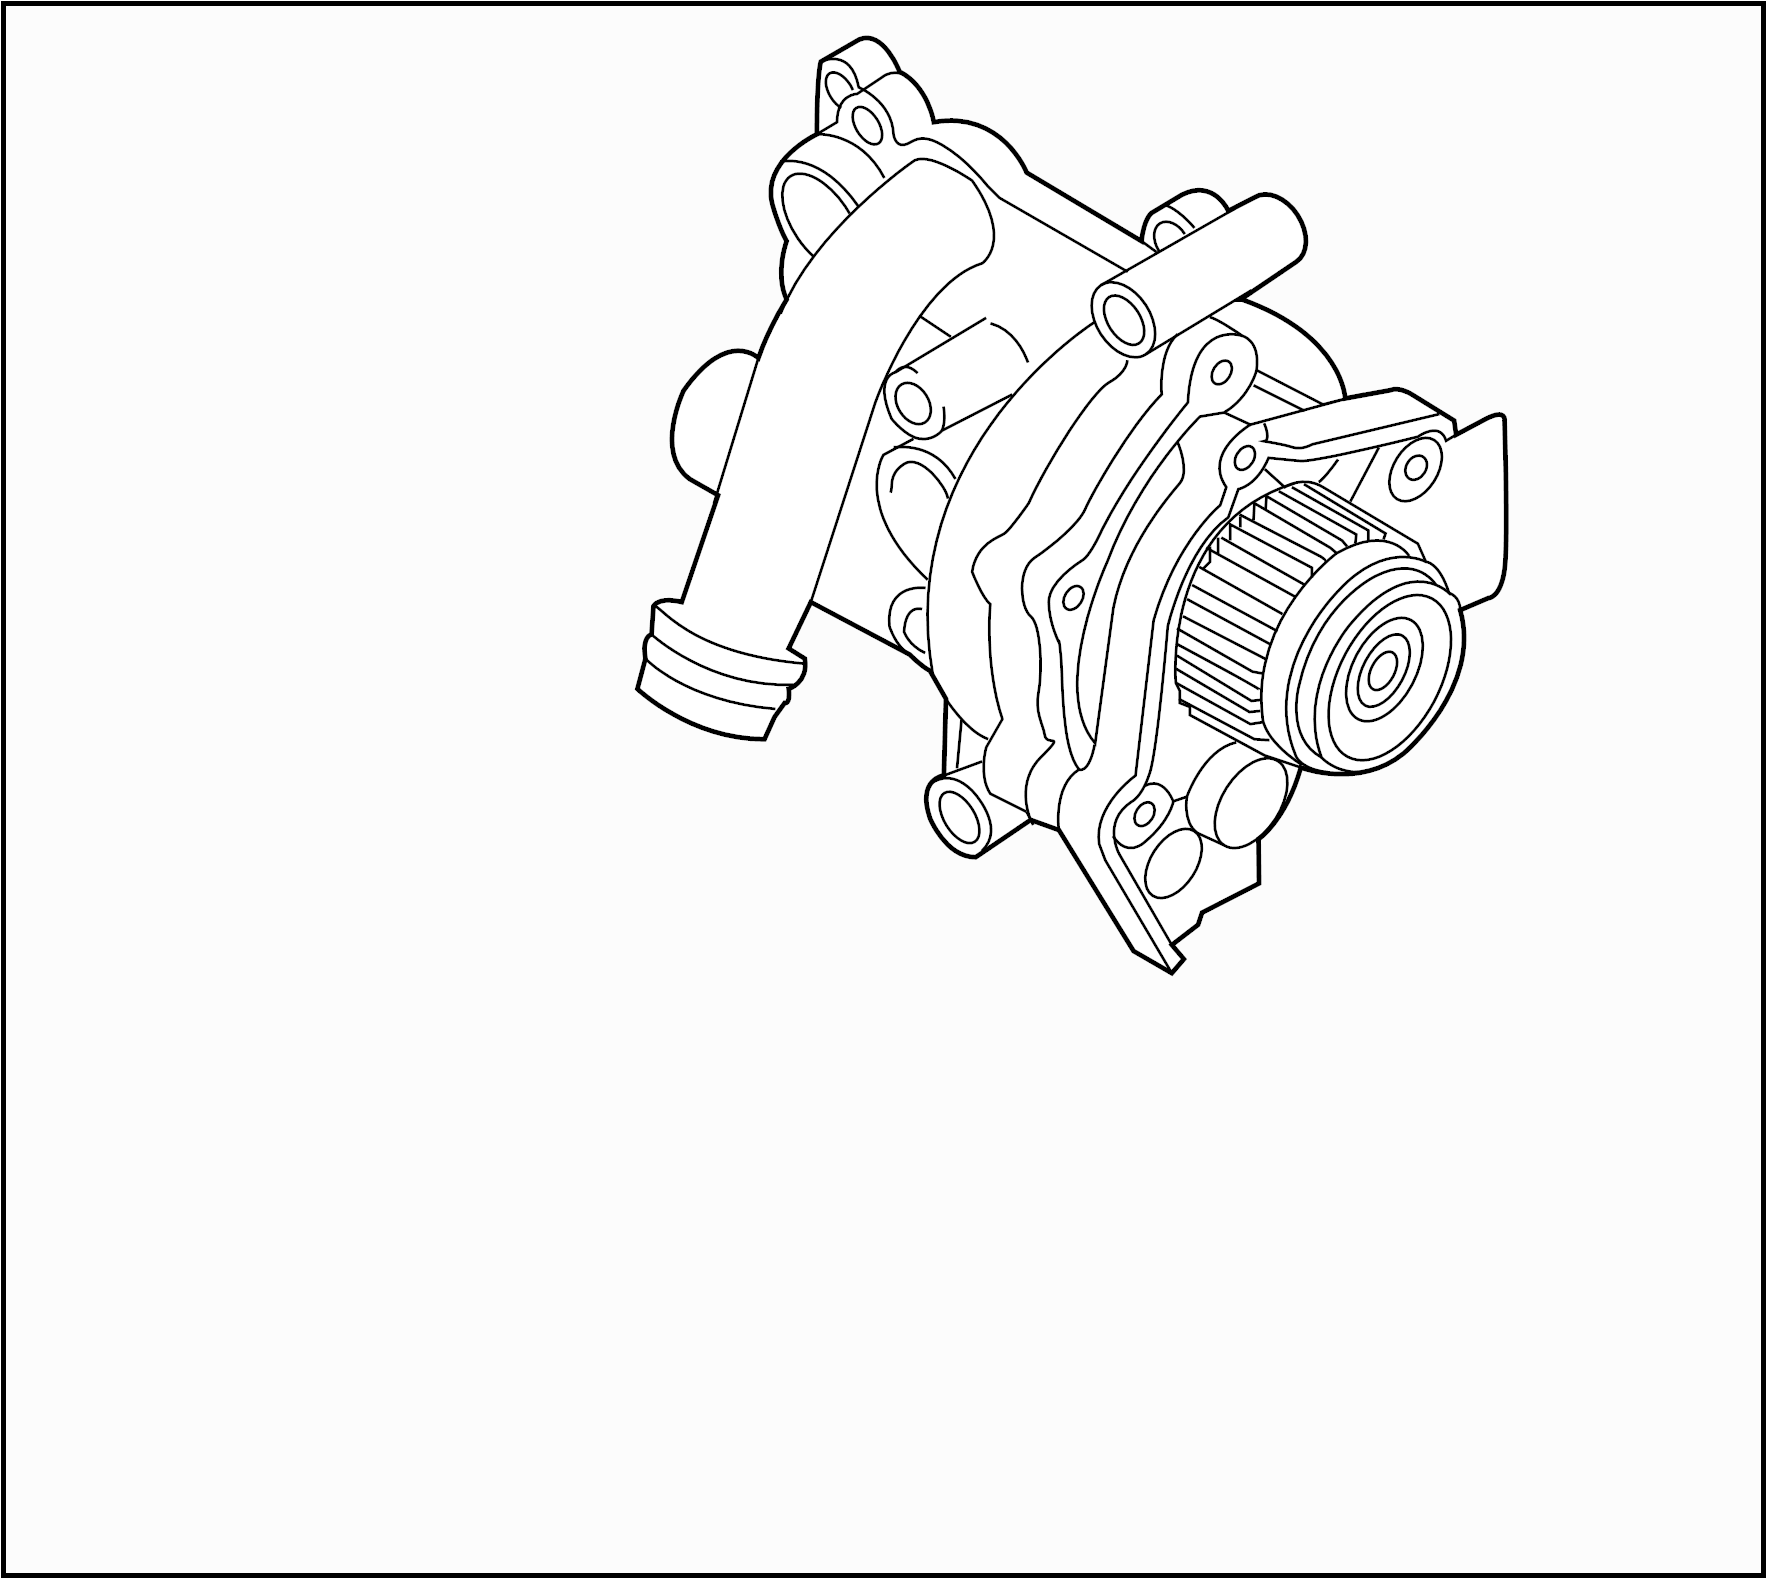 Volkswagen Passat Engine Water Pump Assembly